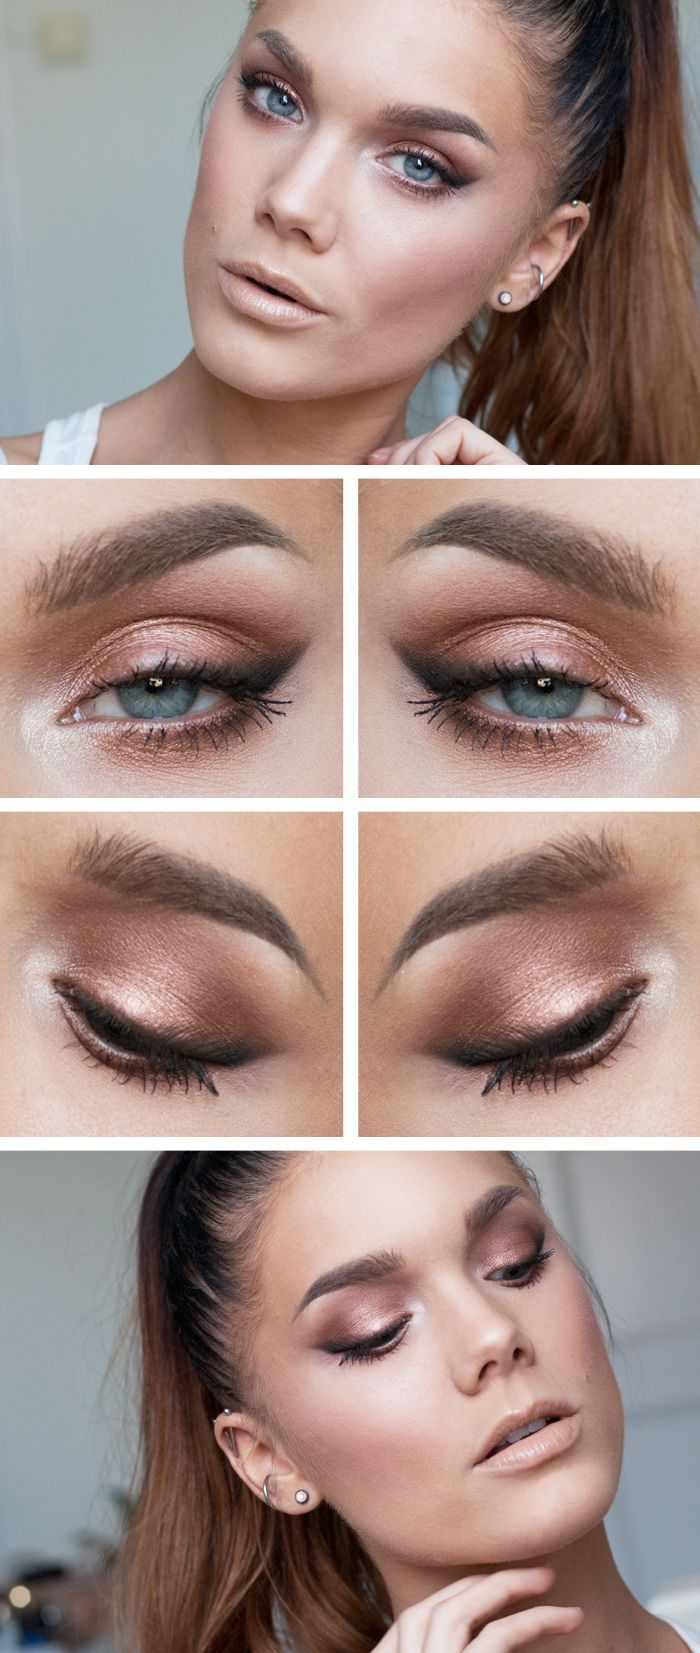 Pretty Makeup With The Eye Glitters 2052994: Simple Yet Stylish Light Makeup Ideas To Try For Daily